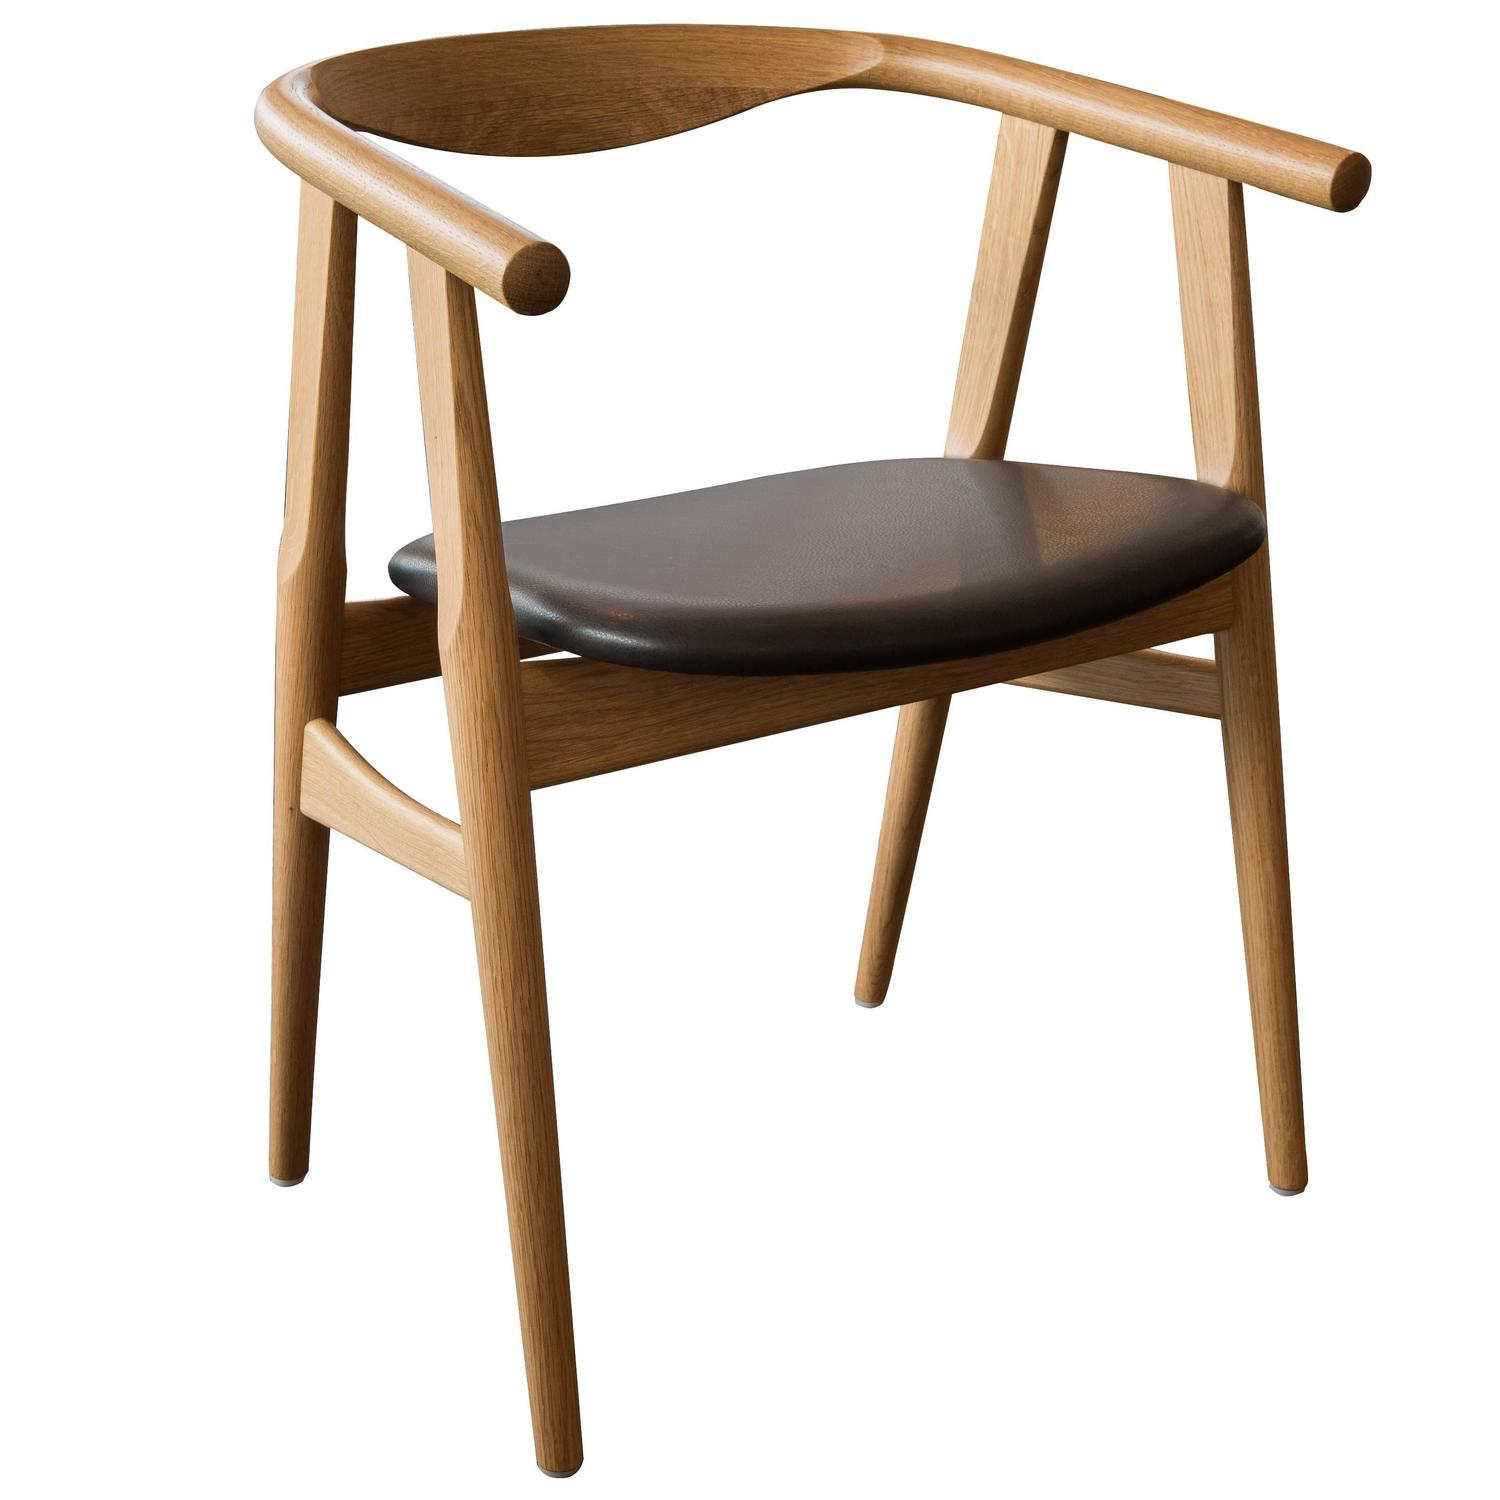 Hans J Wegner GE 525 Chair at 1stdibs